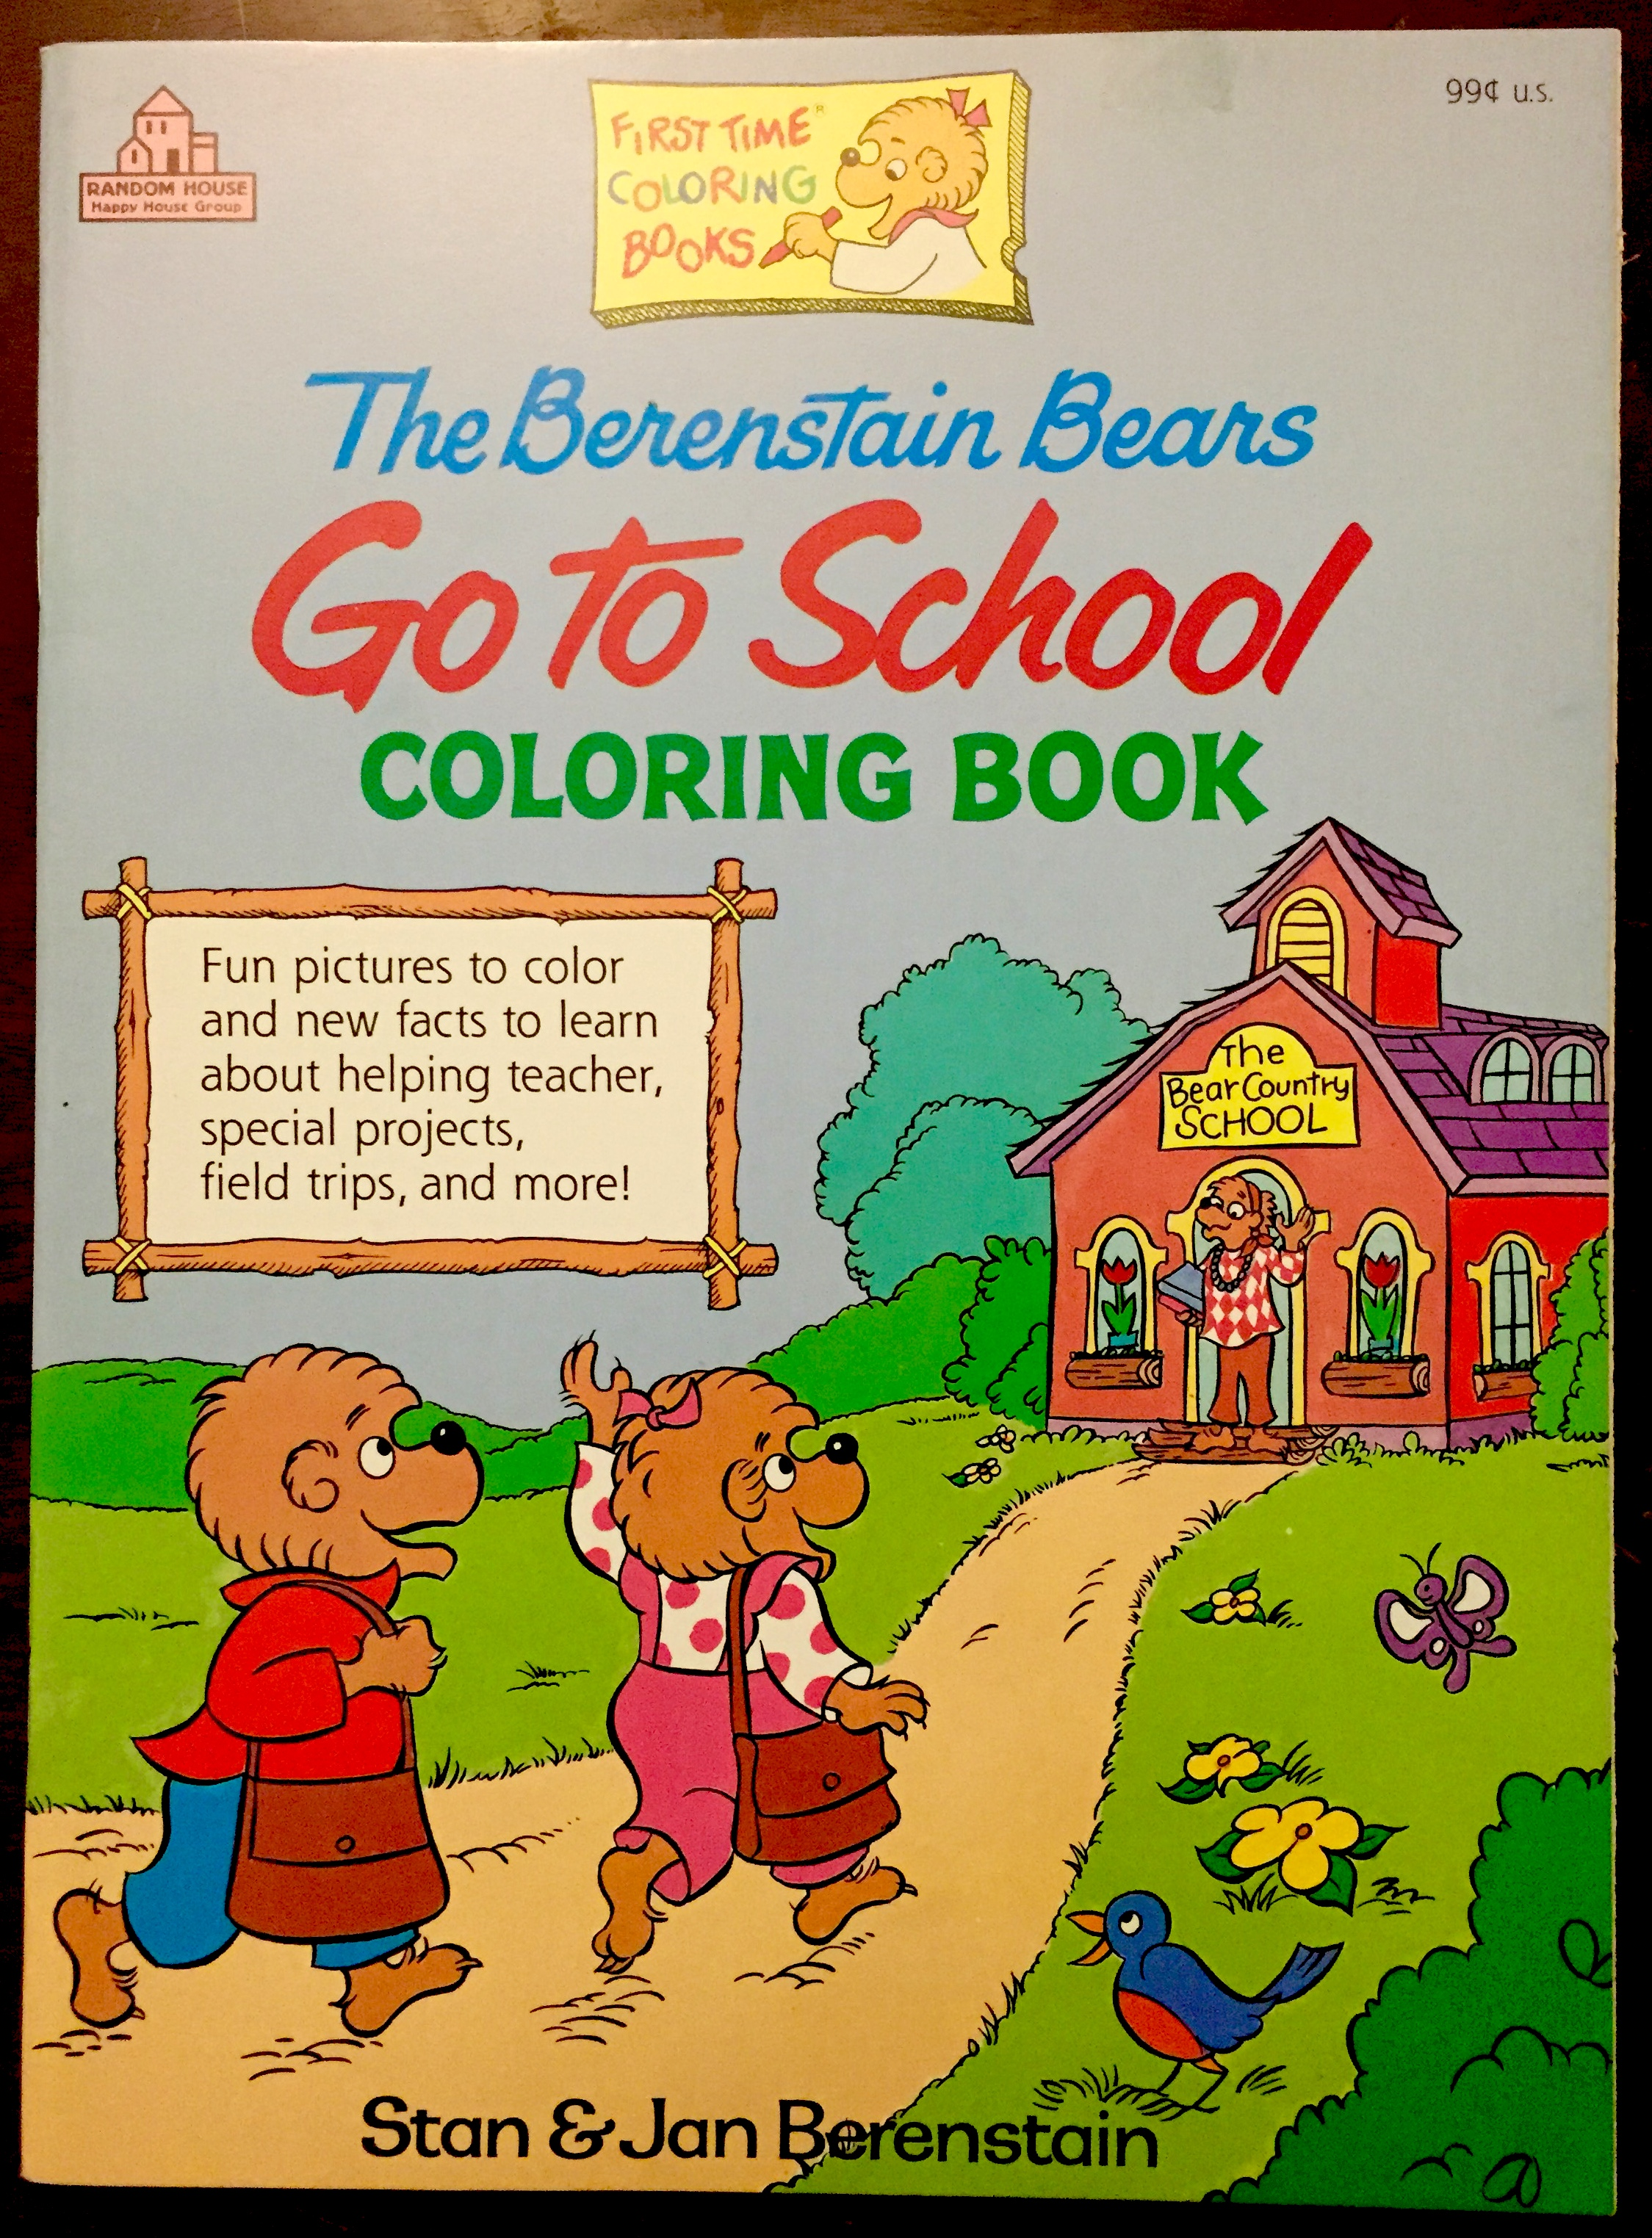 Berenstain Bears Go To School Coloring